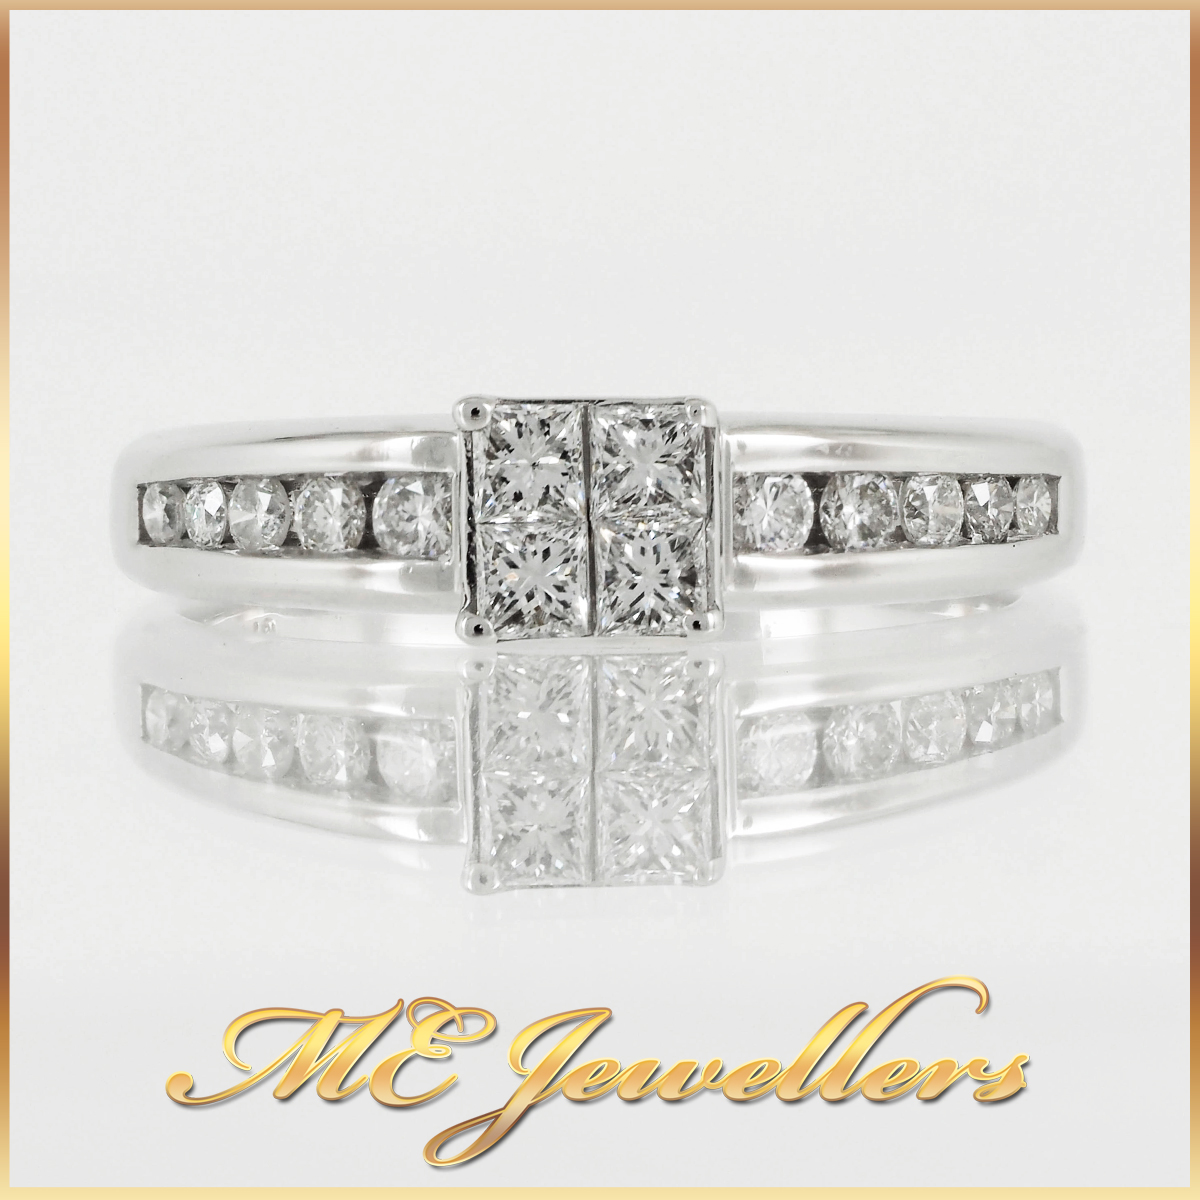 10k White Gold Princess Cut Diamond Cluster Engagement Ring